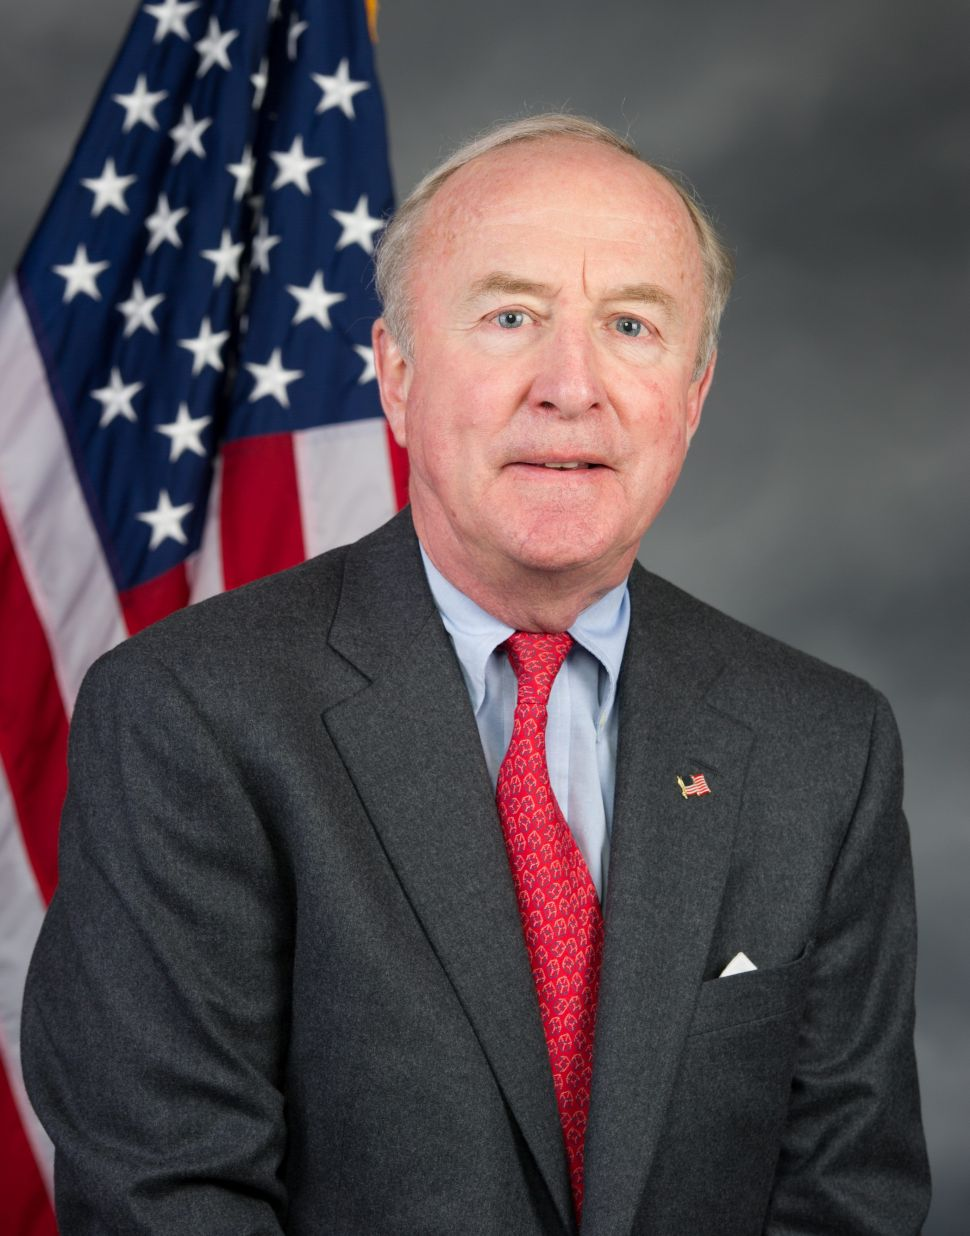 Rodney Frelinghuysen Has Quietly Become NJ's Most Powerful Congressman